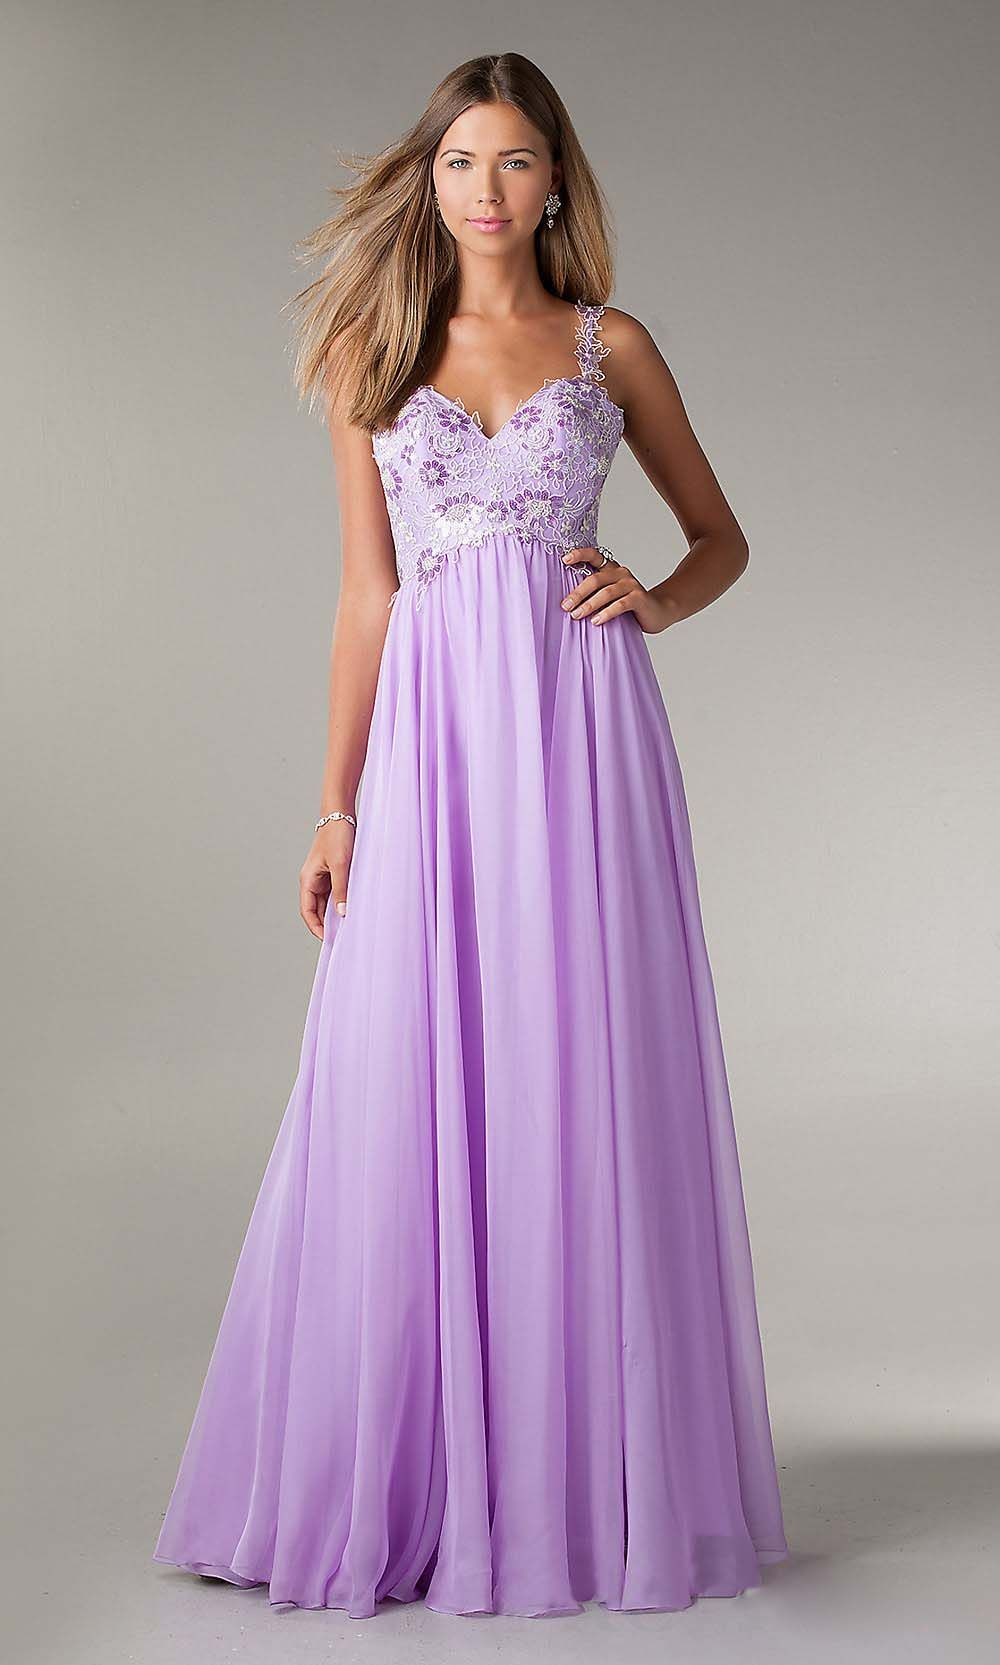 Beautiful prom dress things i love pinterest for Cheap lavender wedding dresses